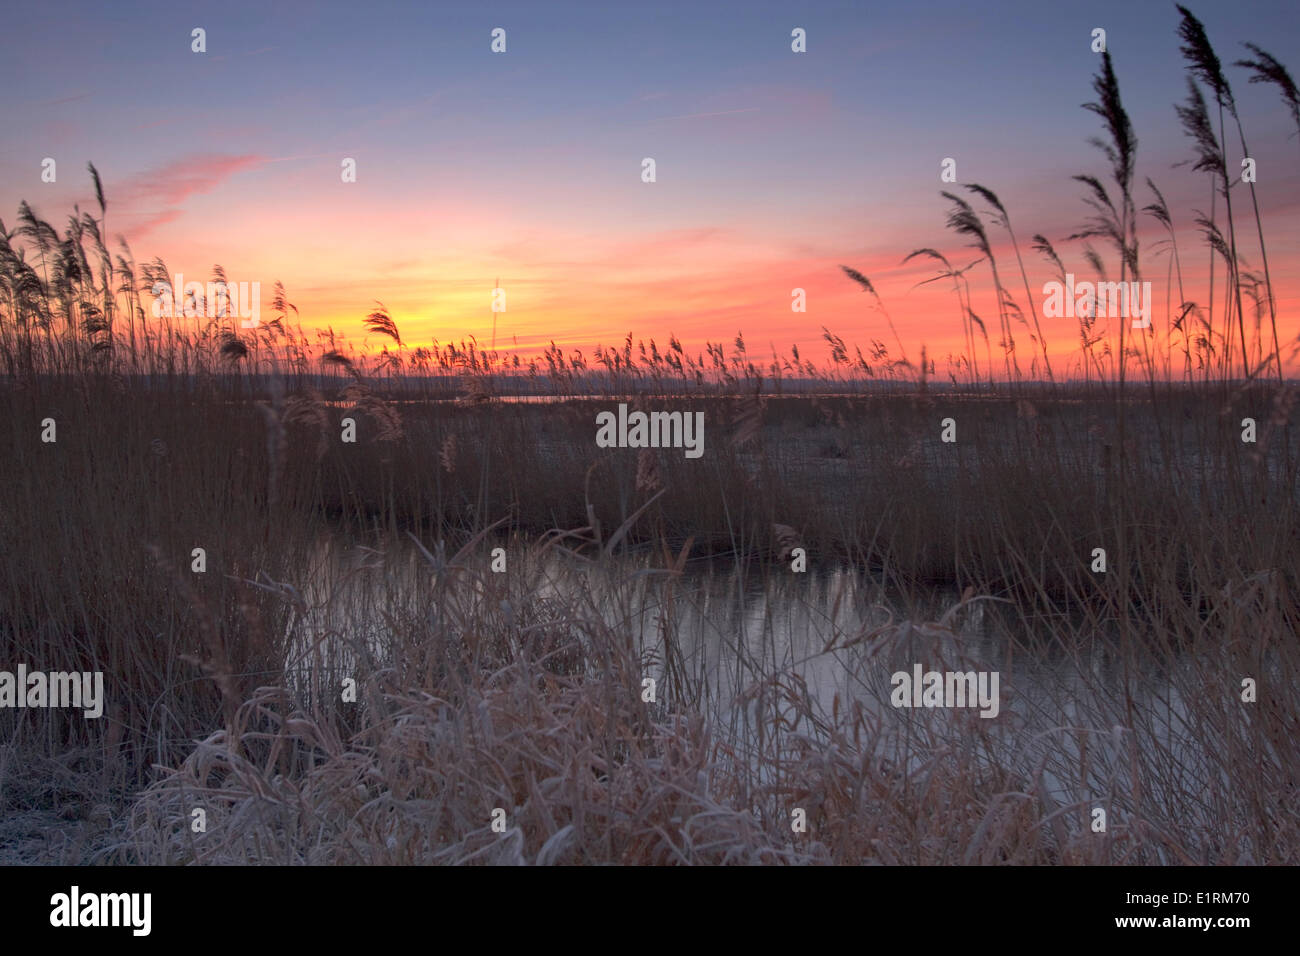 The flaming red sunrise contrasts with the cold blue ice and reed in the foreground. - Stock Image